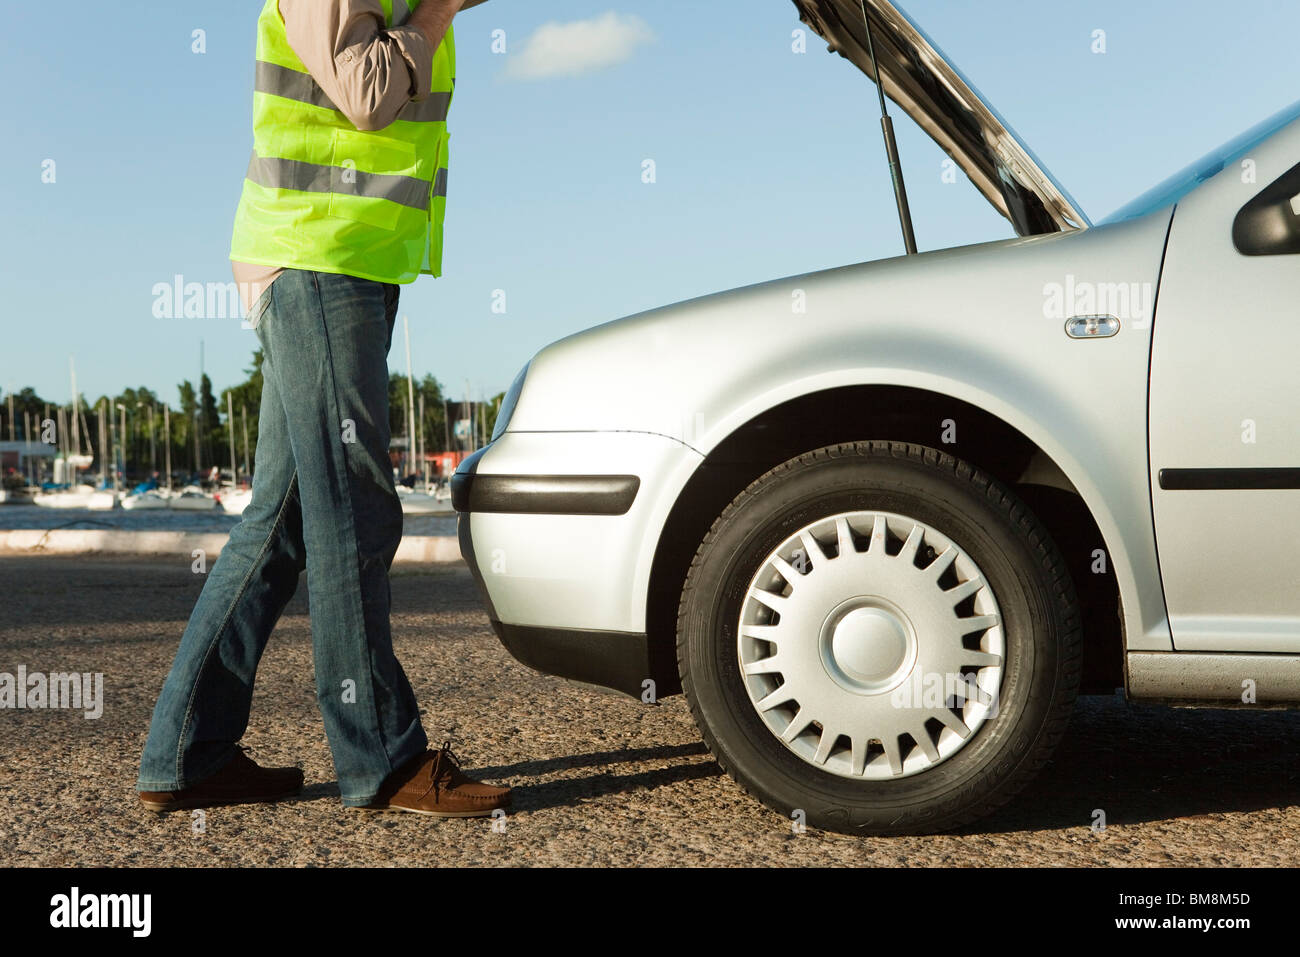 Mechanic evaluating car breakdown on side of road Stock Photo